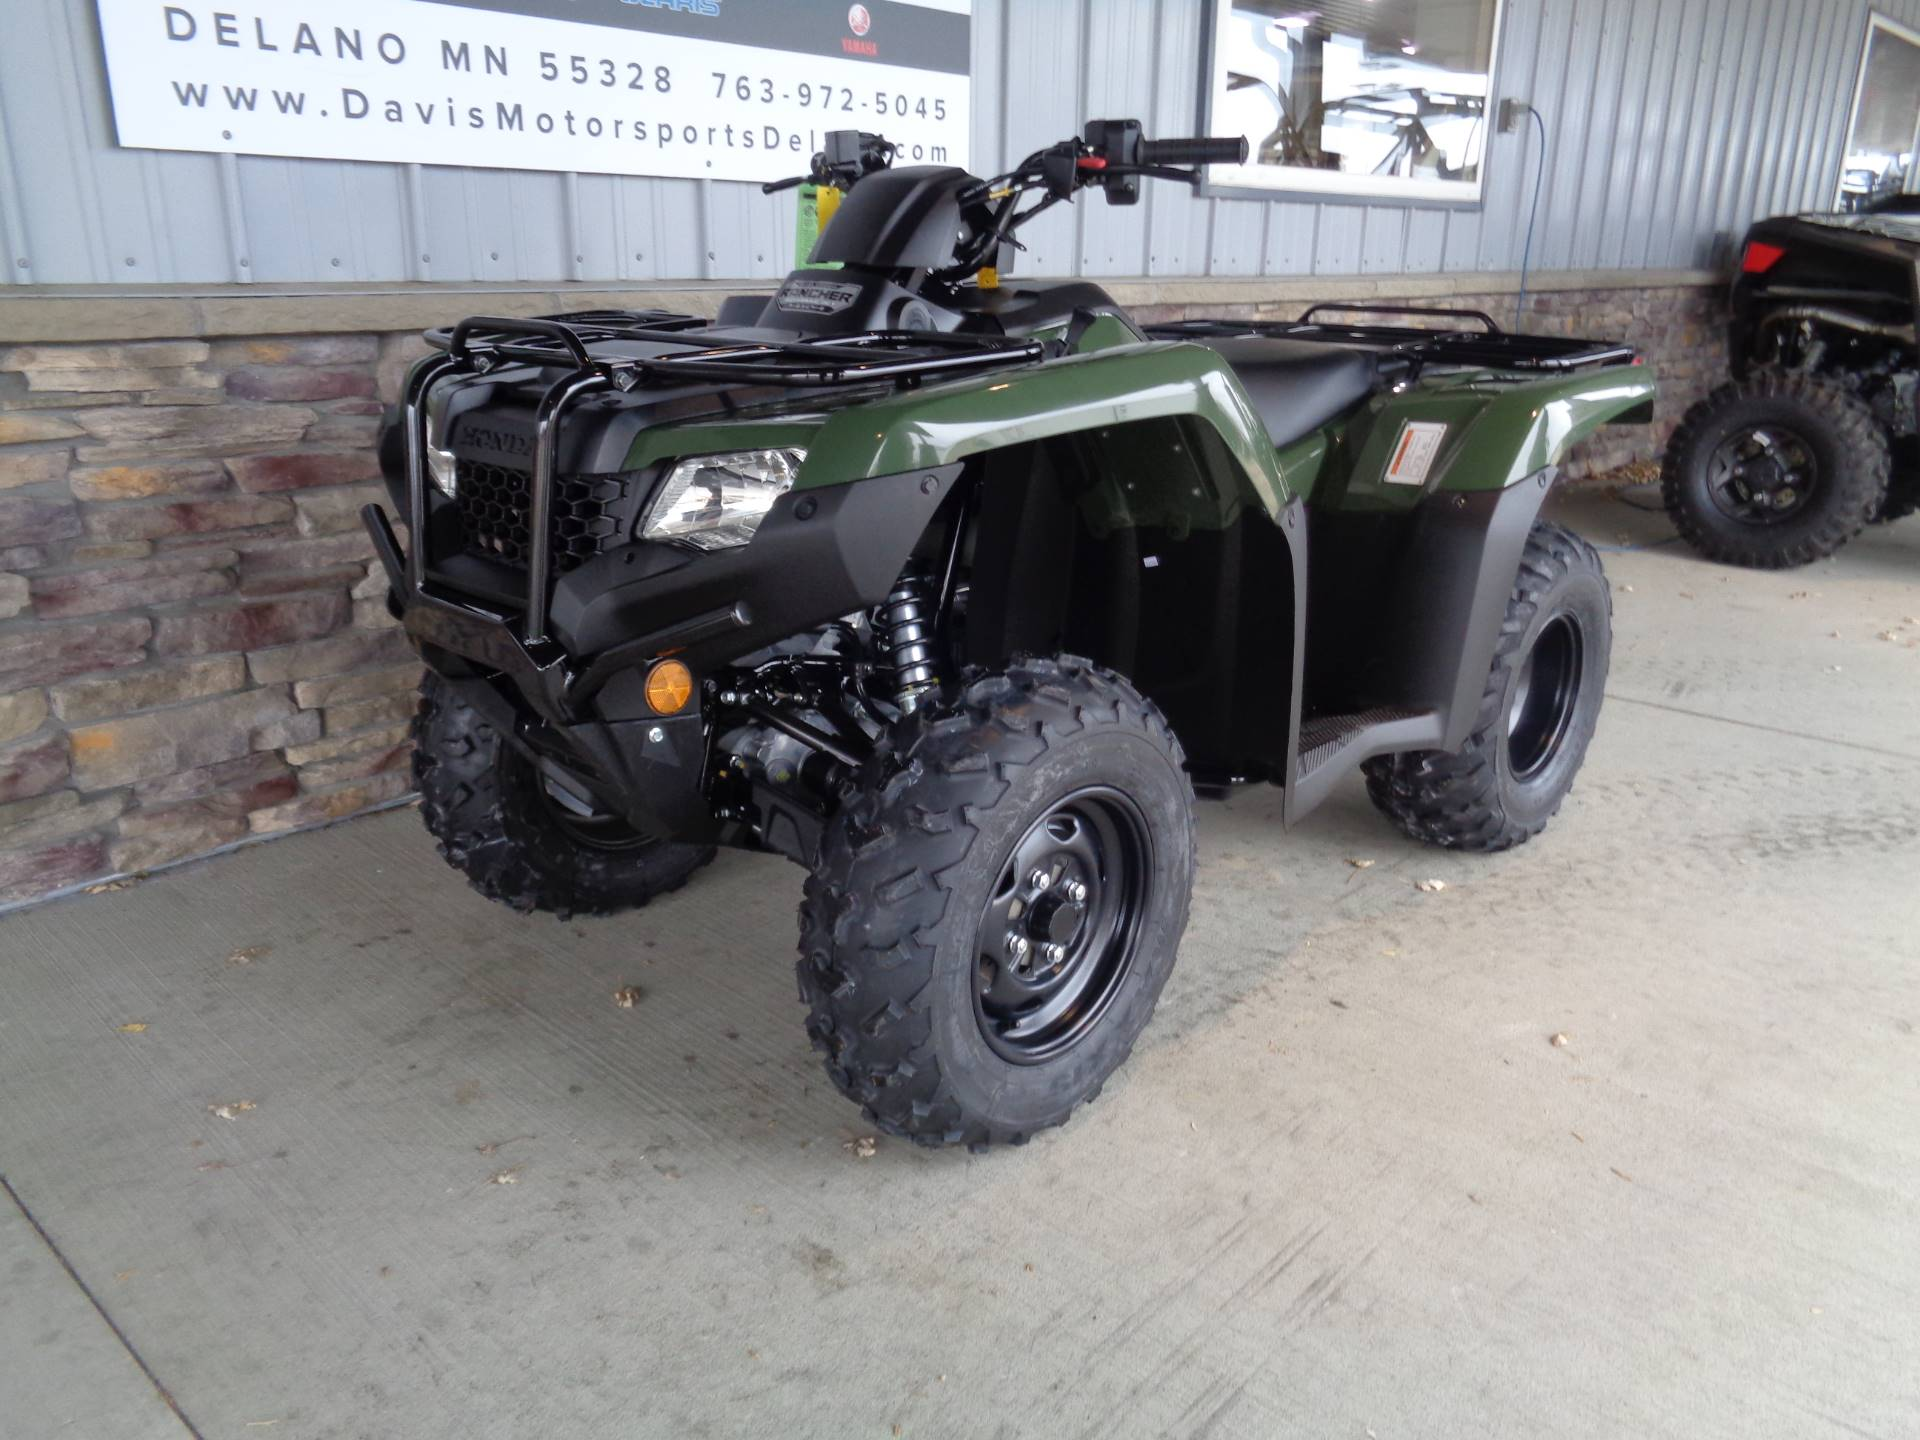 2019 Honda FourTrax Rancher 4x4 DCT EPS in Delano, Minnesota - Photo 4